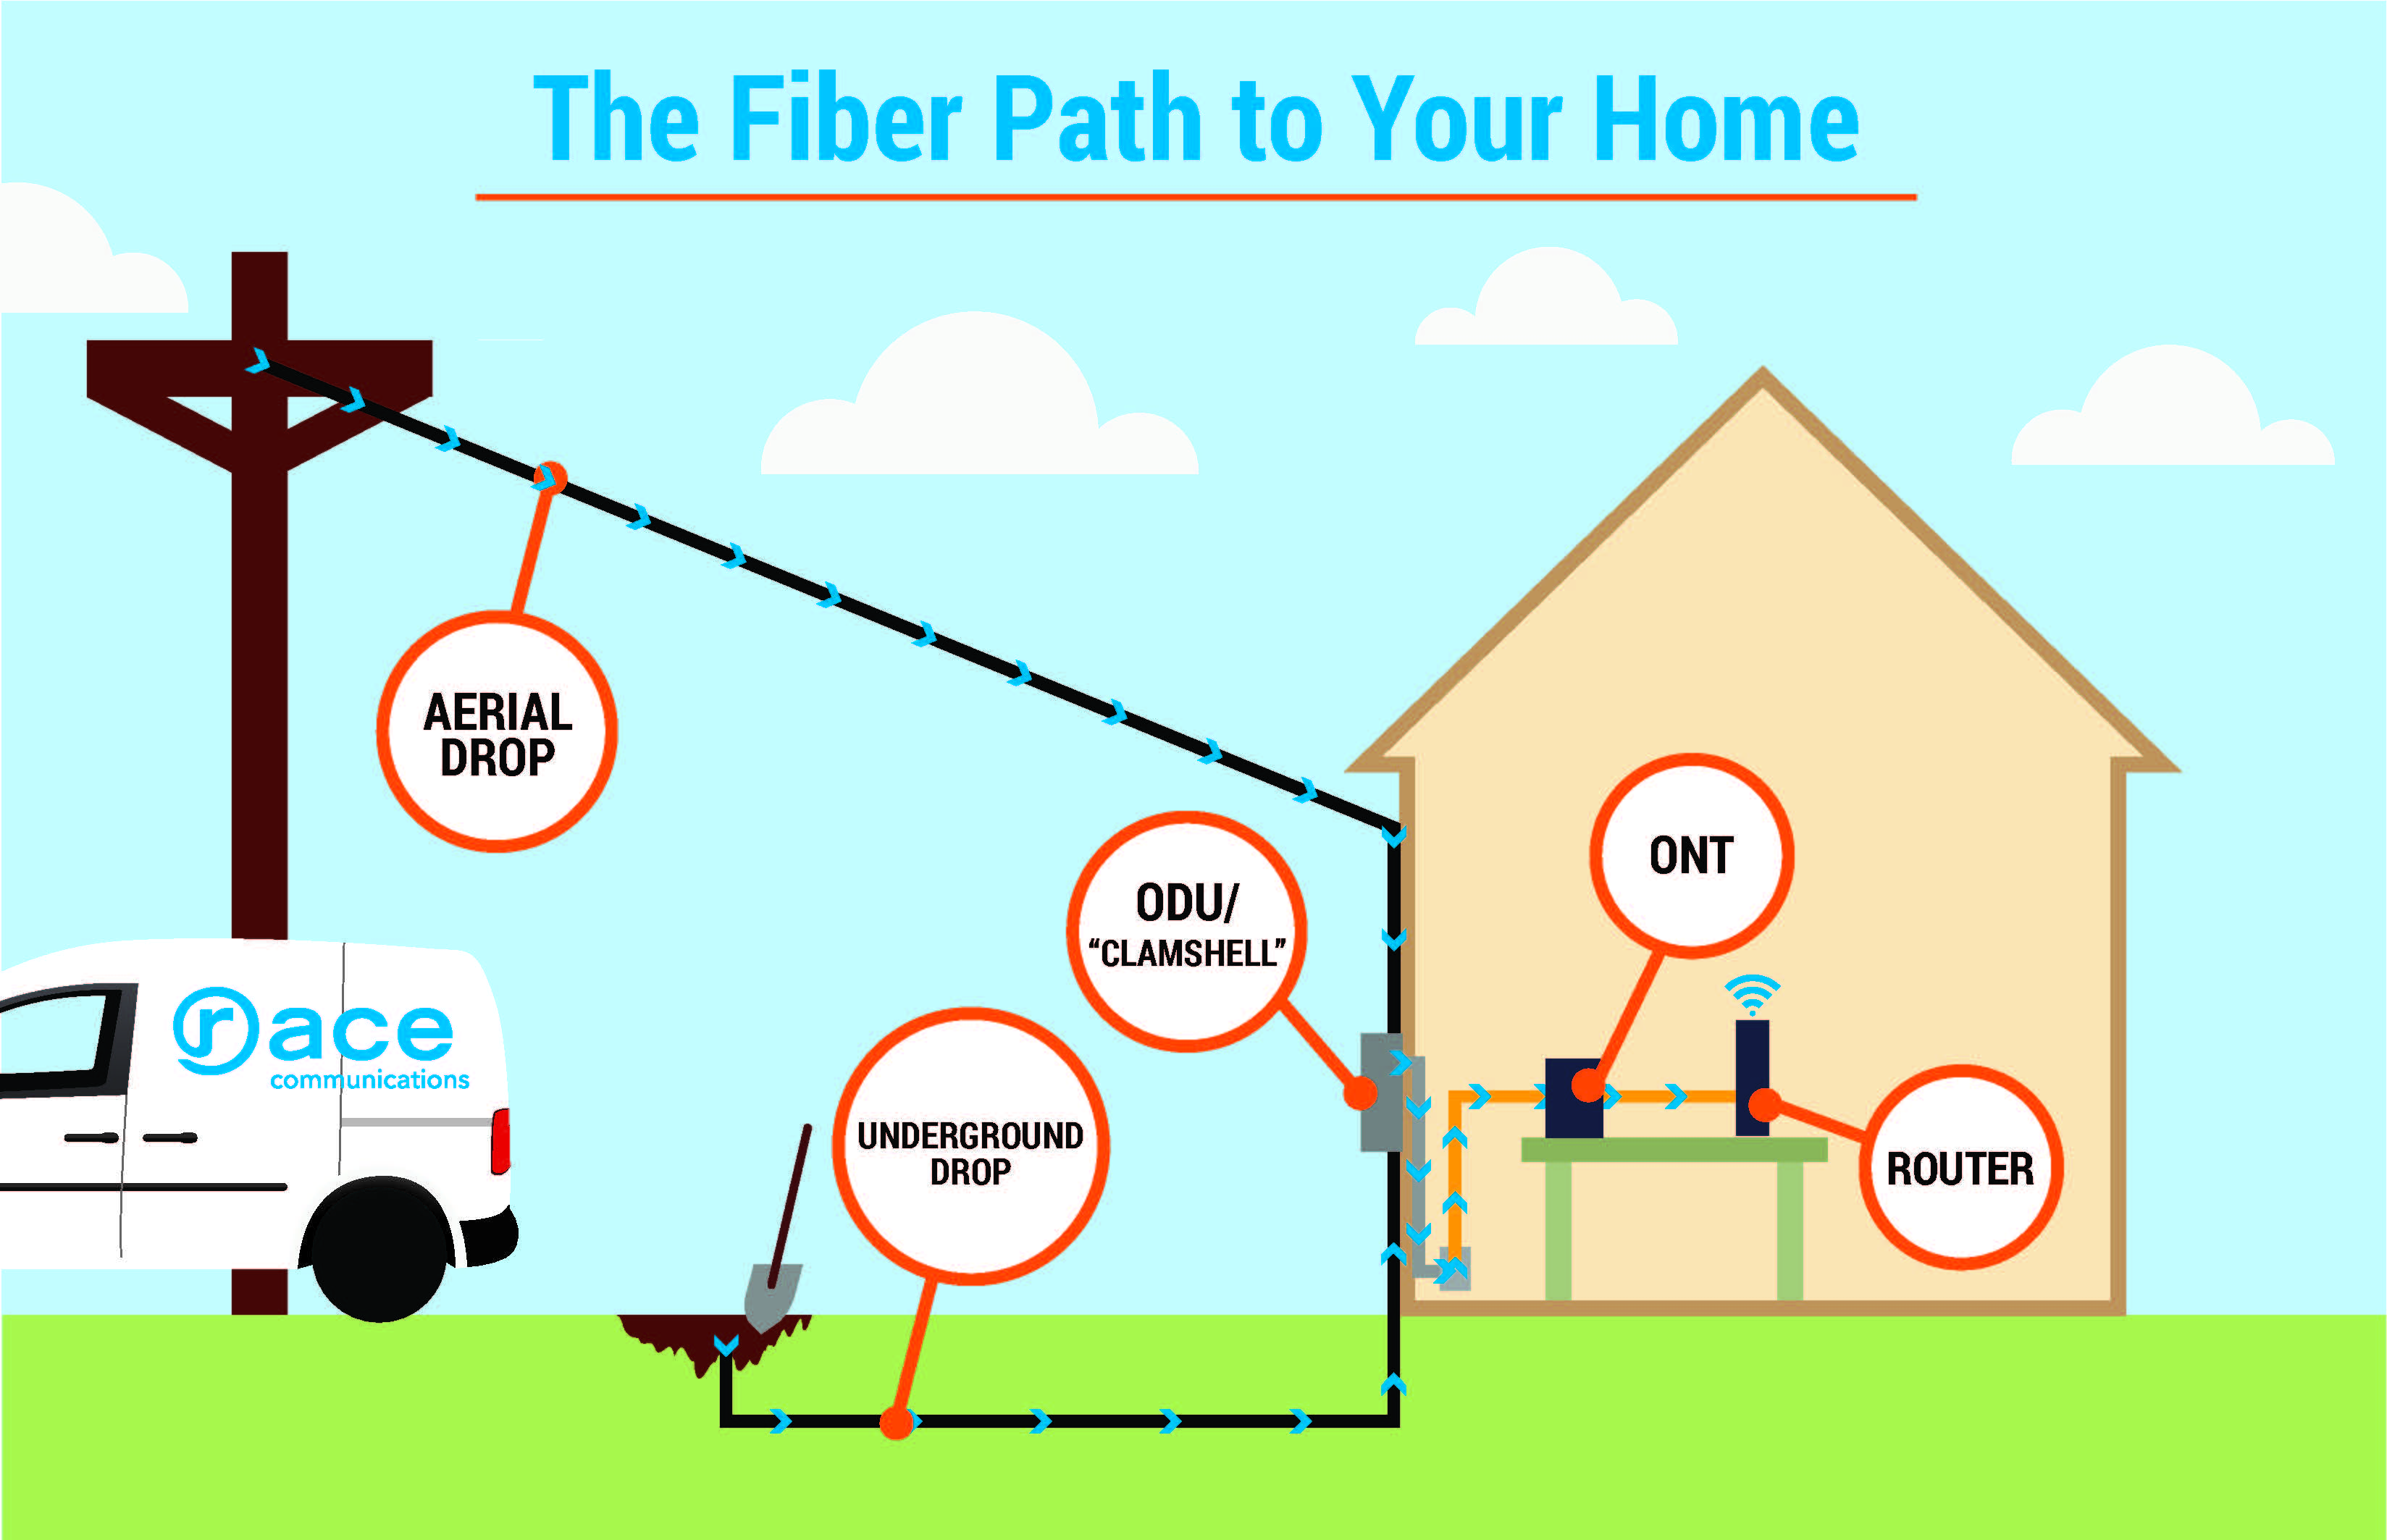 race_the fiber path to your home_2?w=810 the fiber path to your home race communications blog